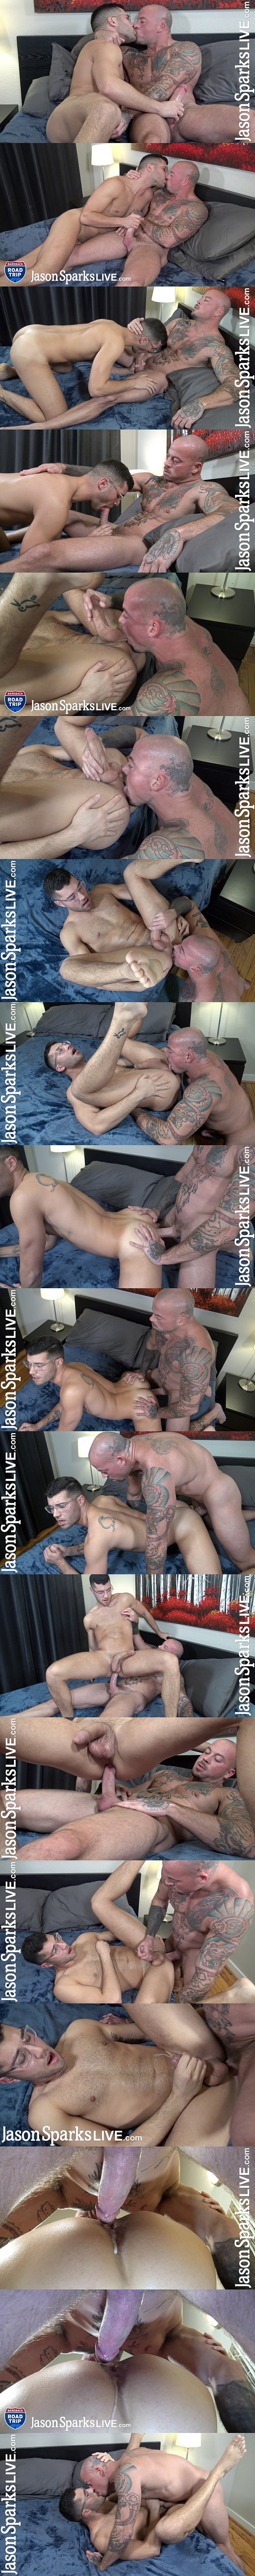 Jasonsparkslive - inked hunky gay porn star Sean Duran barebacks newbie Jeremy George before he fucks the cum out of Jeremy and creampies him in Jeremy's bottoming debut 02